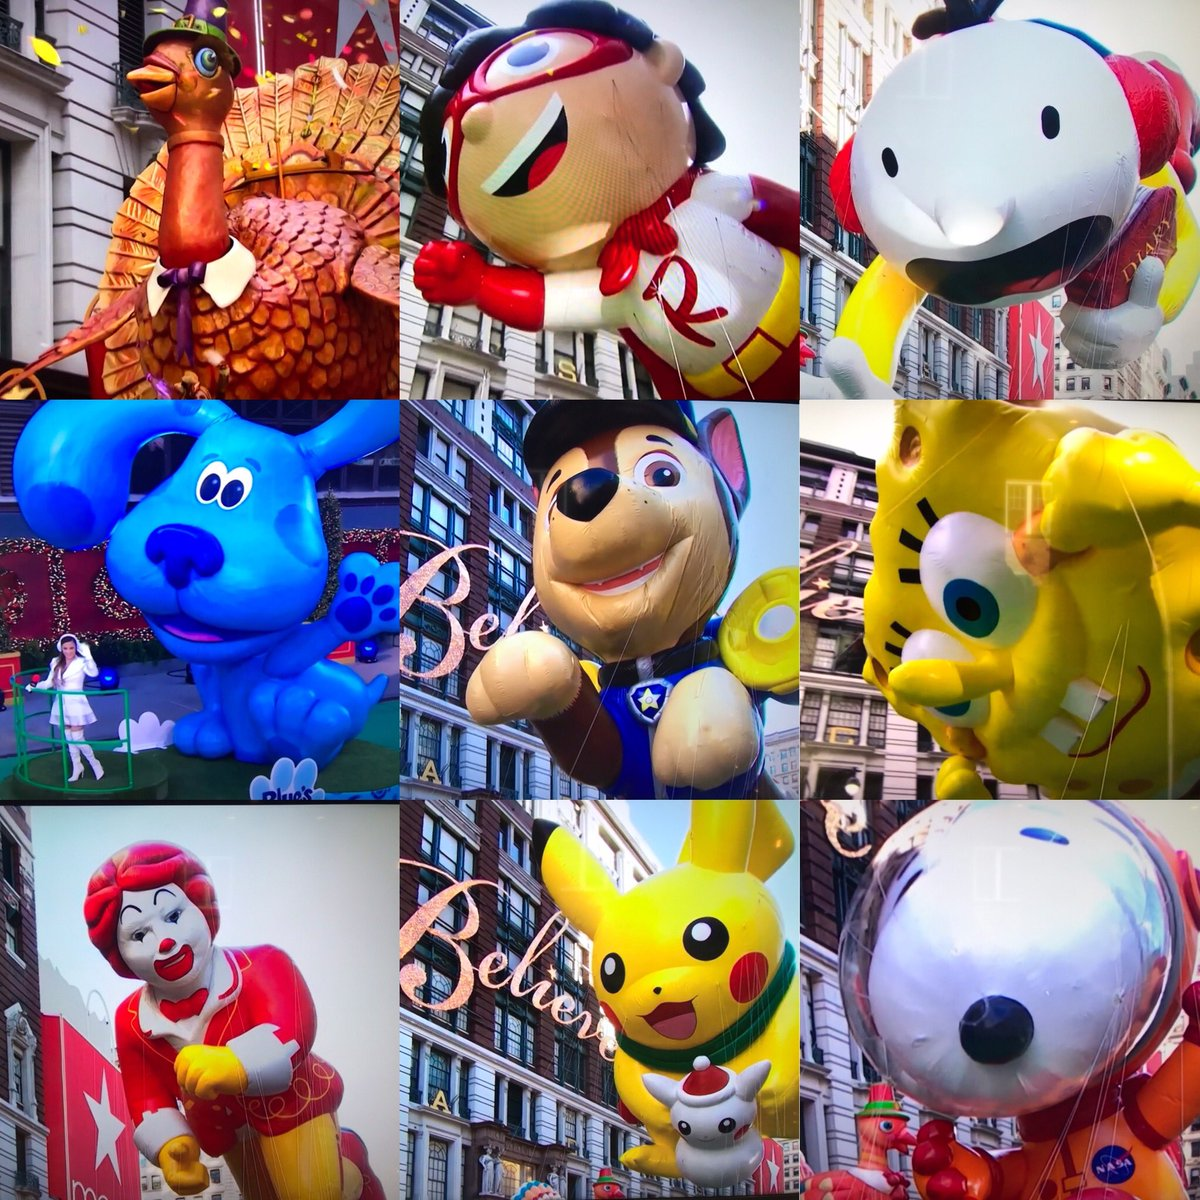 94th Annual Macy's Thanksgiving Day Parade #MacysDayParade